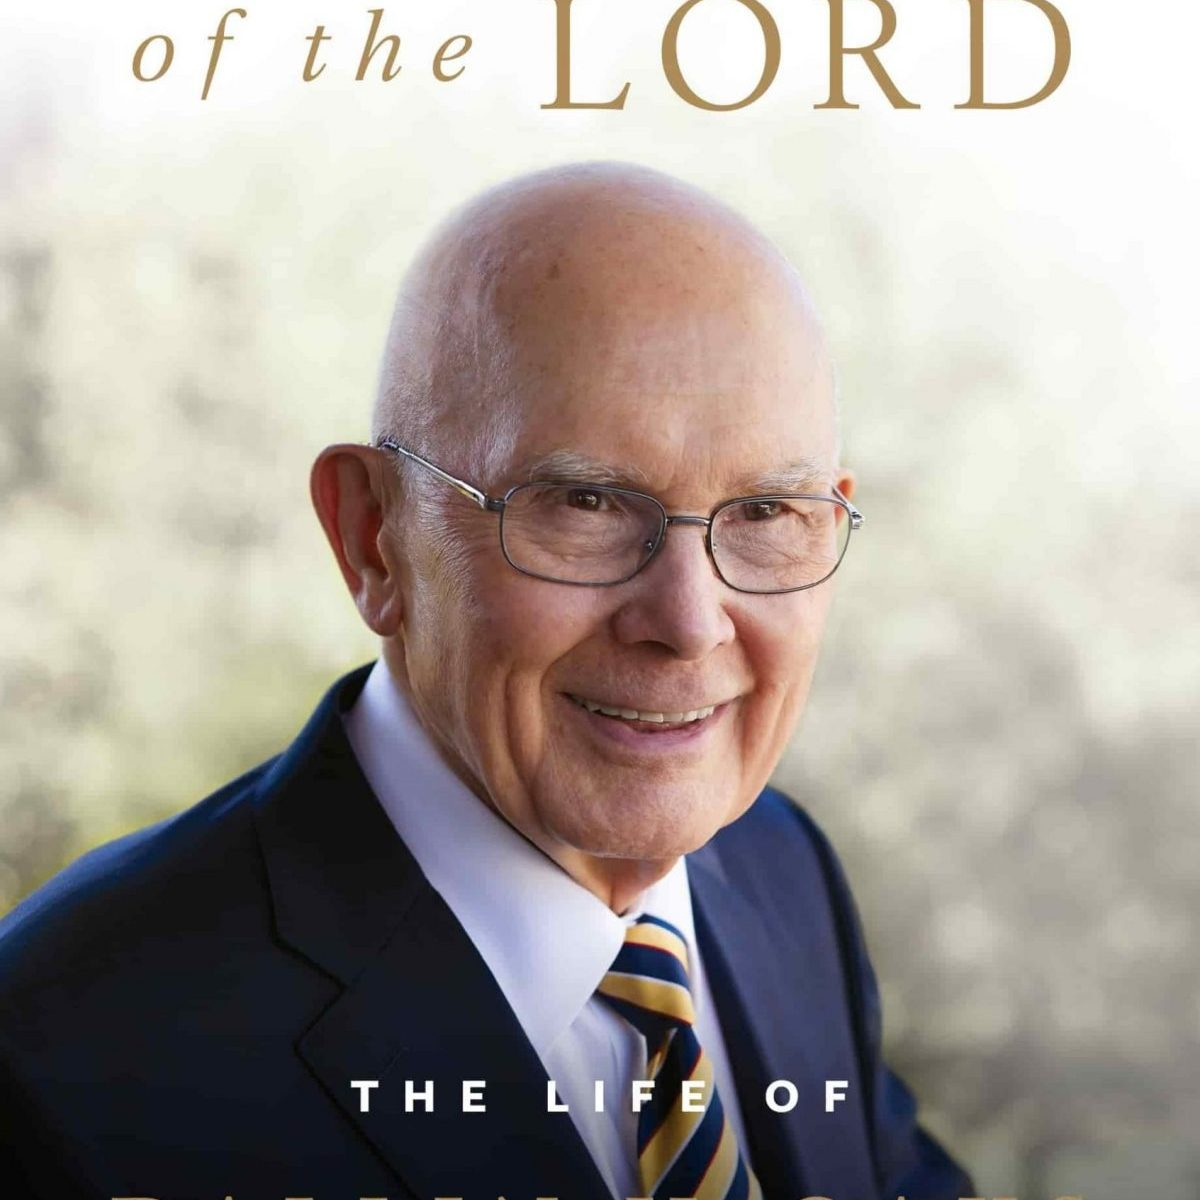 The book cover of In the Hands of the Lord, the BIography of Dallin H. Oaks